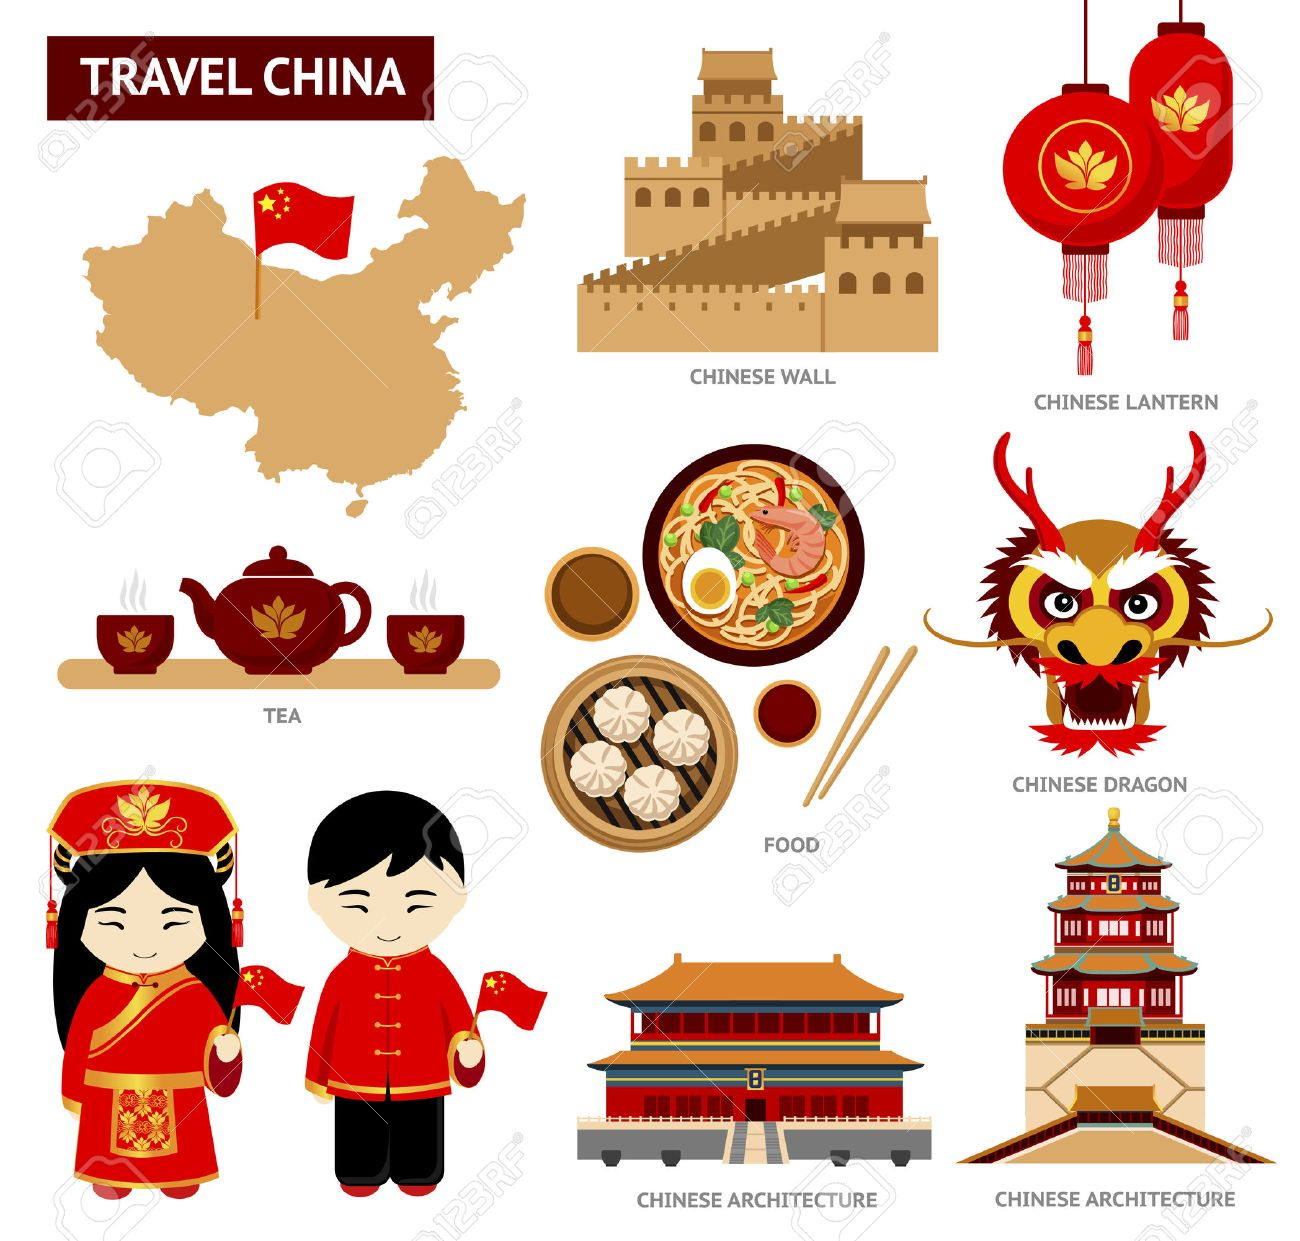 25329 Chinese Food Stock Vector Illustration And Royalty Free